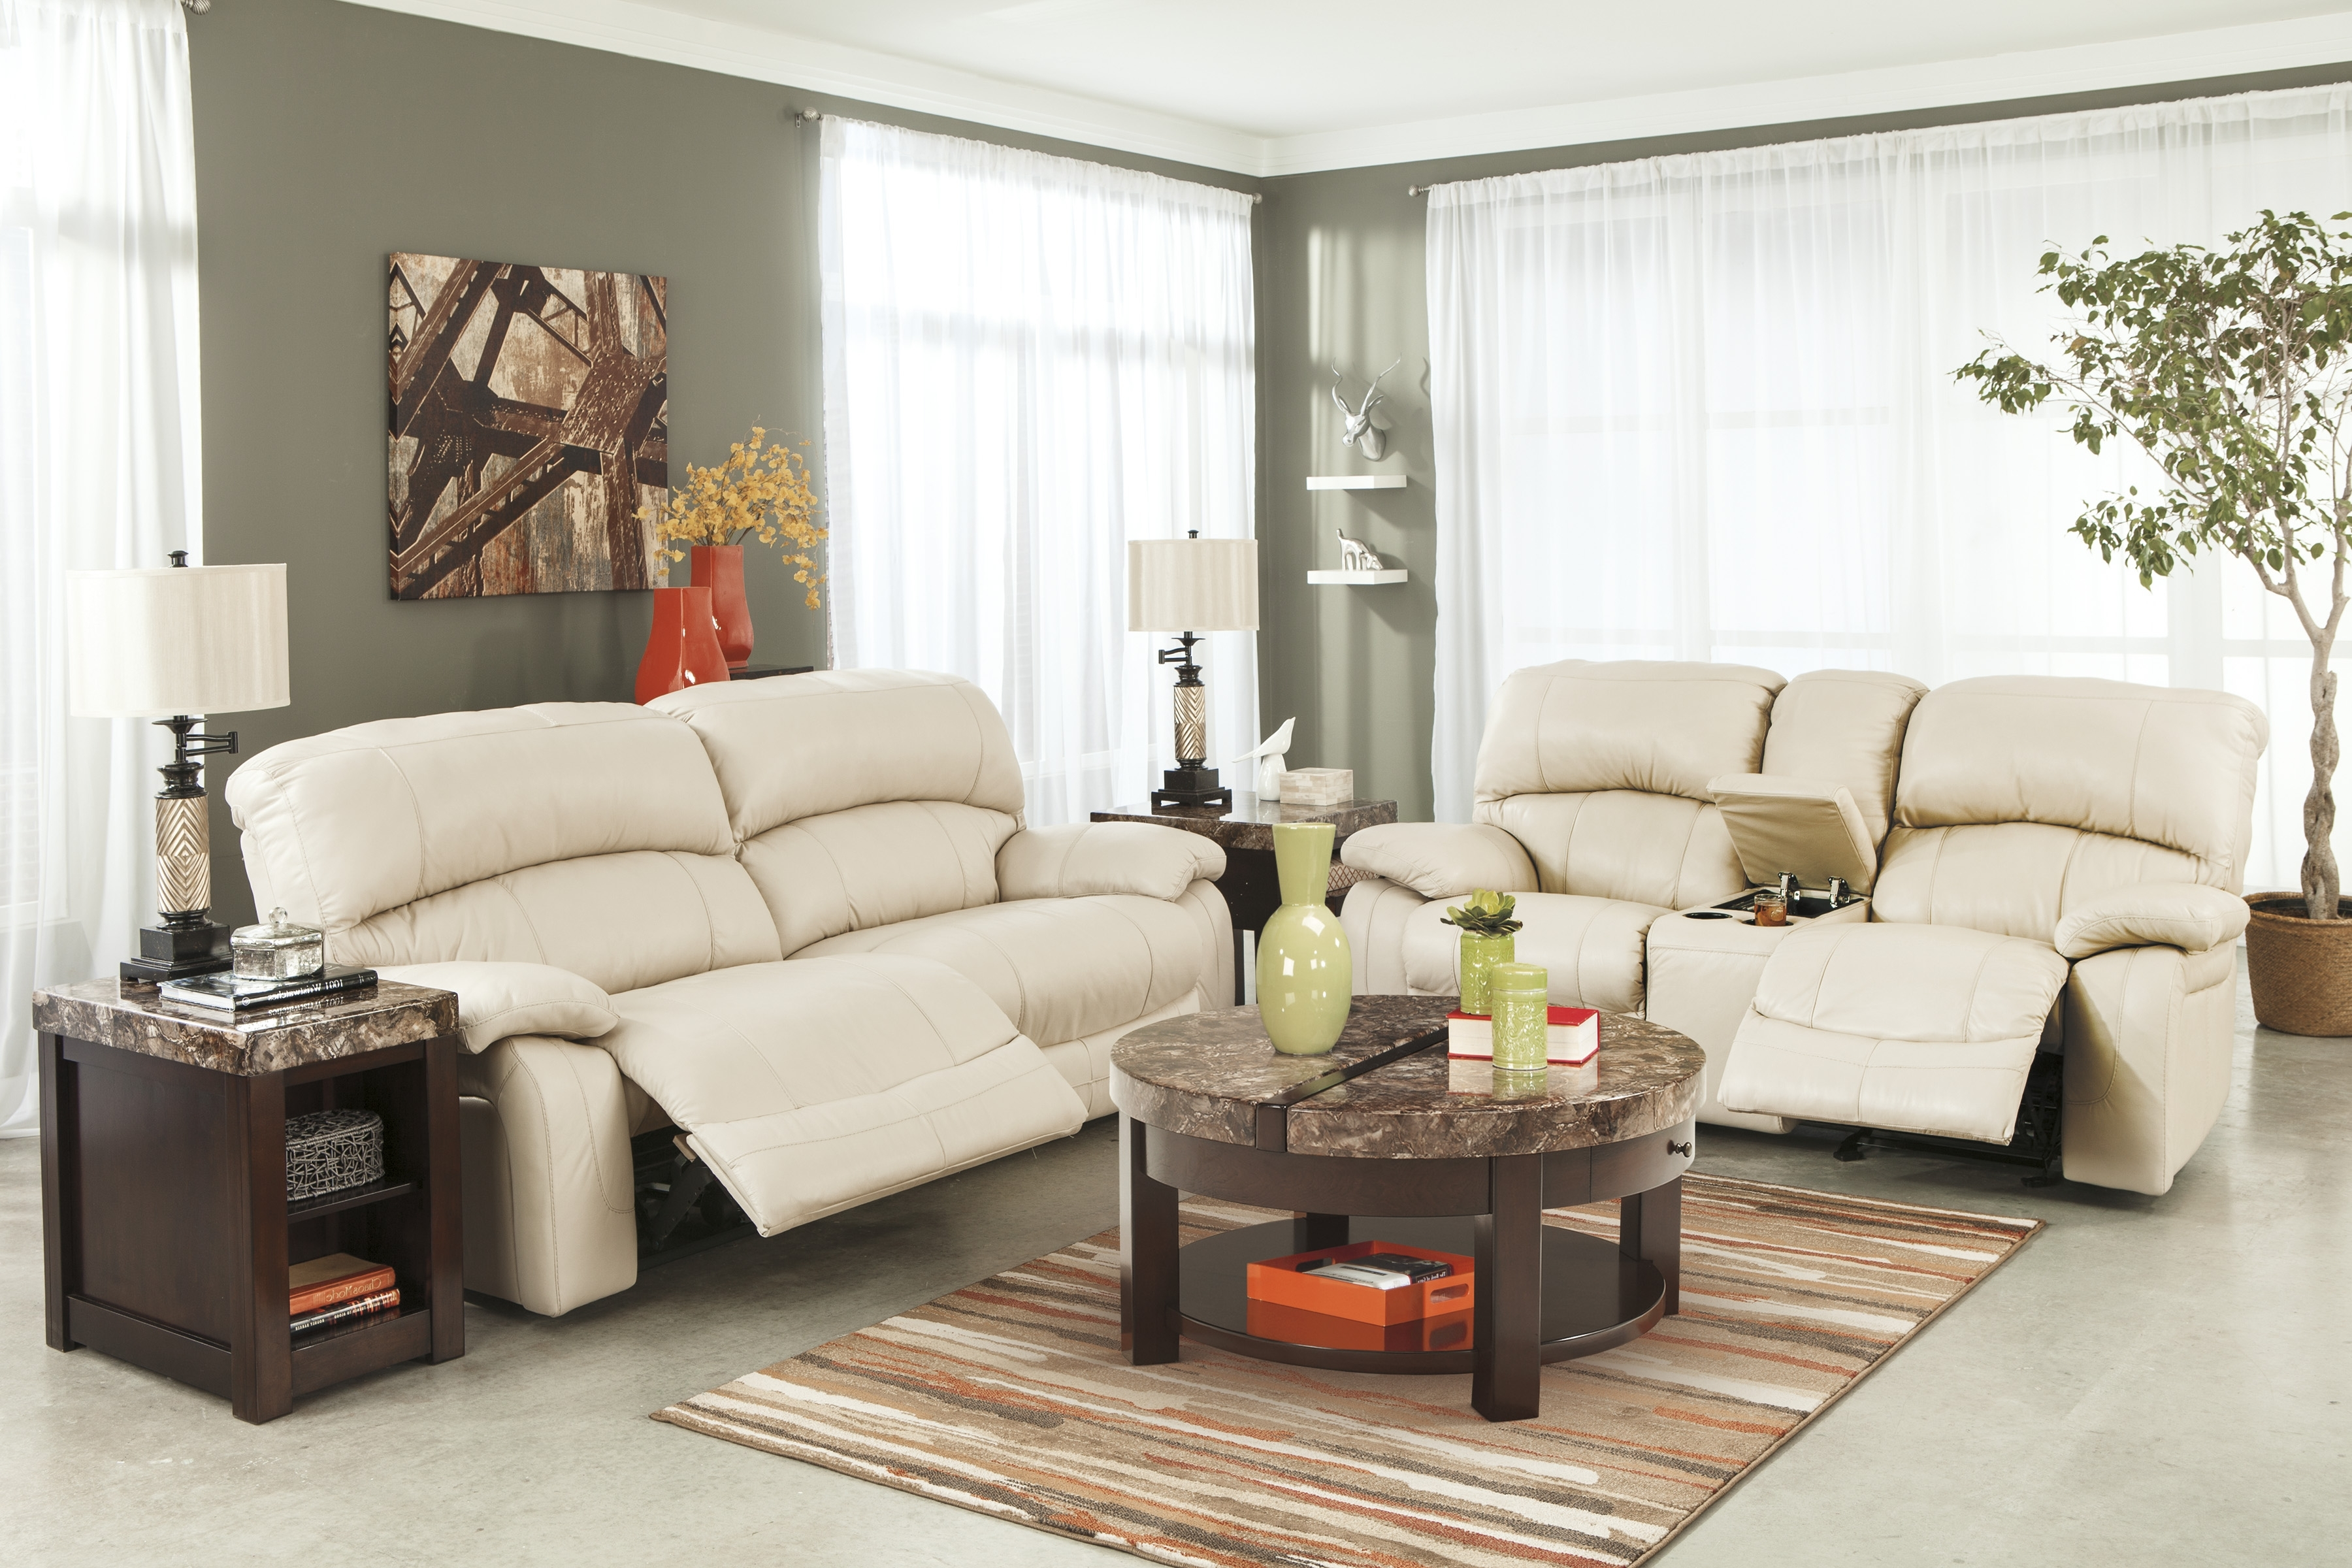 Jacksonville Nc Sectional Sofas With Regard To Well Known Power Sofa Set Tags : Reclining Sofa Loveseat Sets Modern Recliner (View 14 of 15)